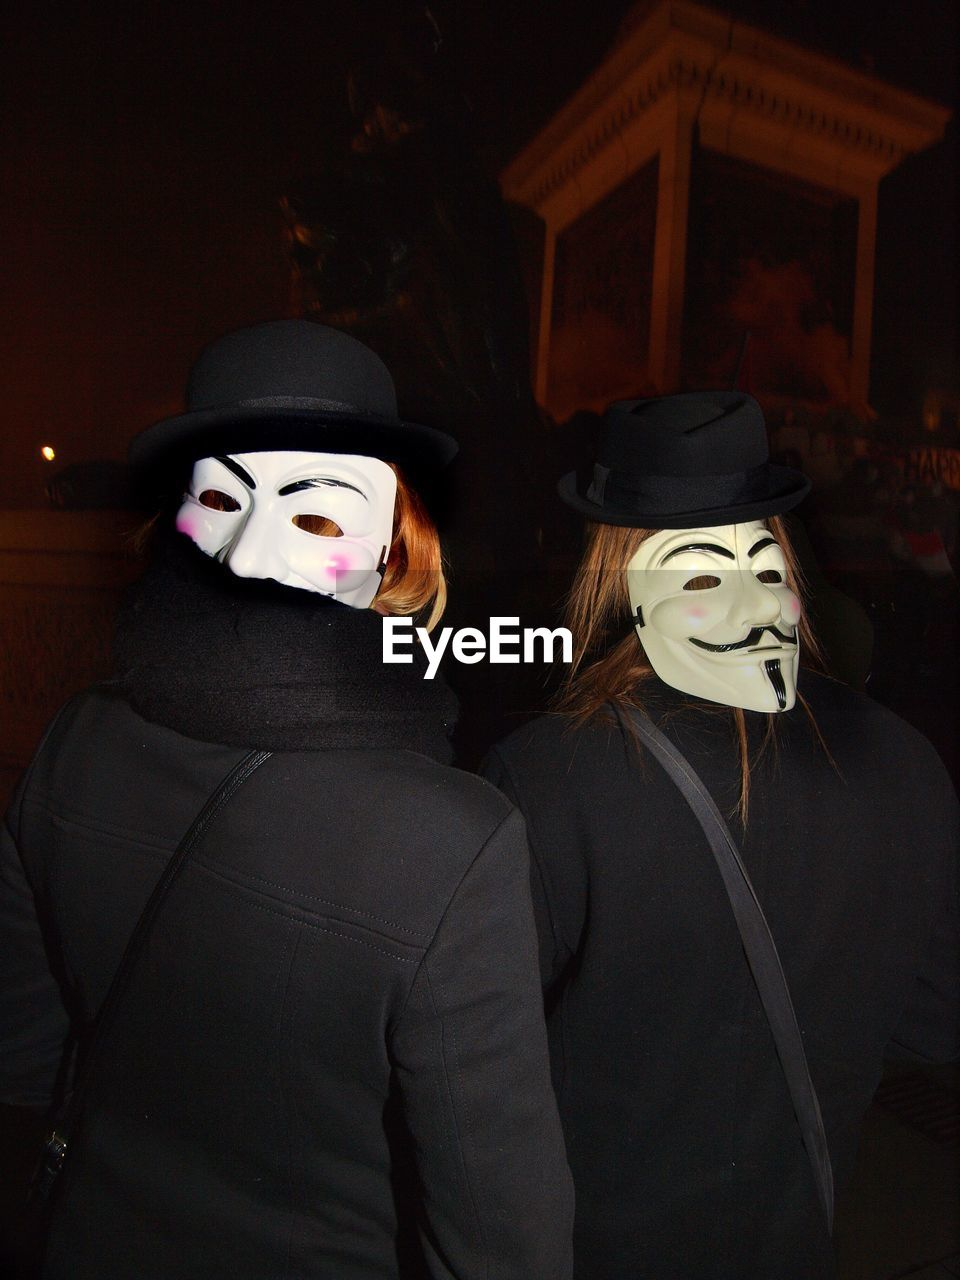 mask - disguise, costume, halloween, night, celebration, disguise, spooky, two people, holiday - event, carnival, real people, men, women, stage costume, togetherness, indoors, witch, people